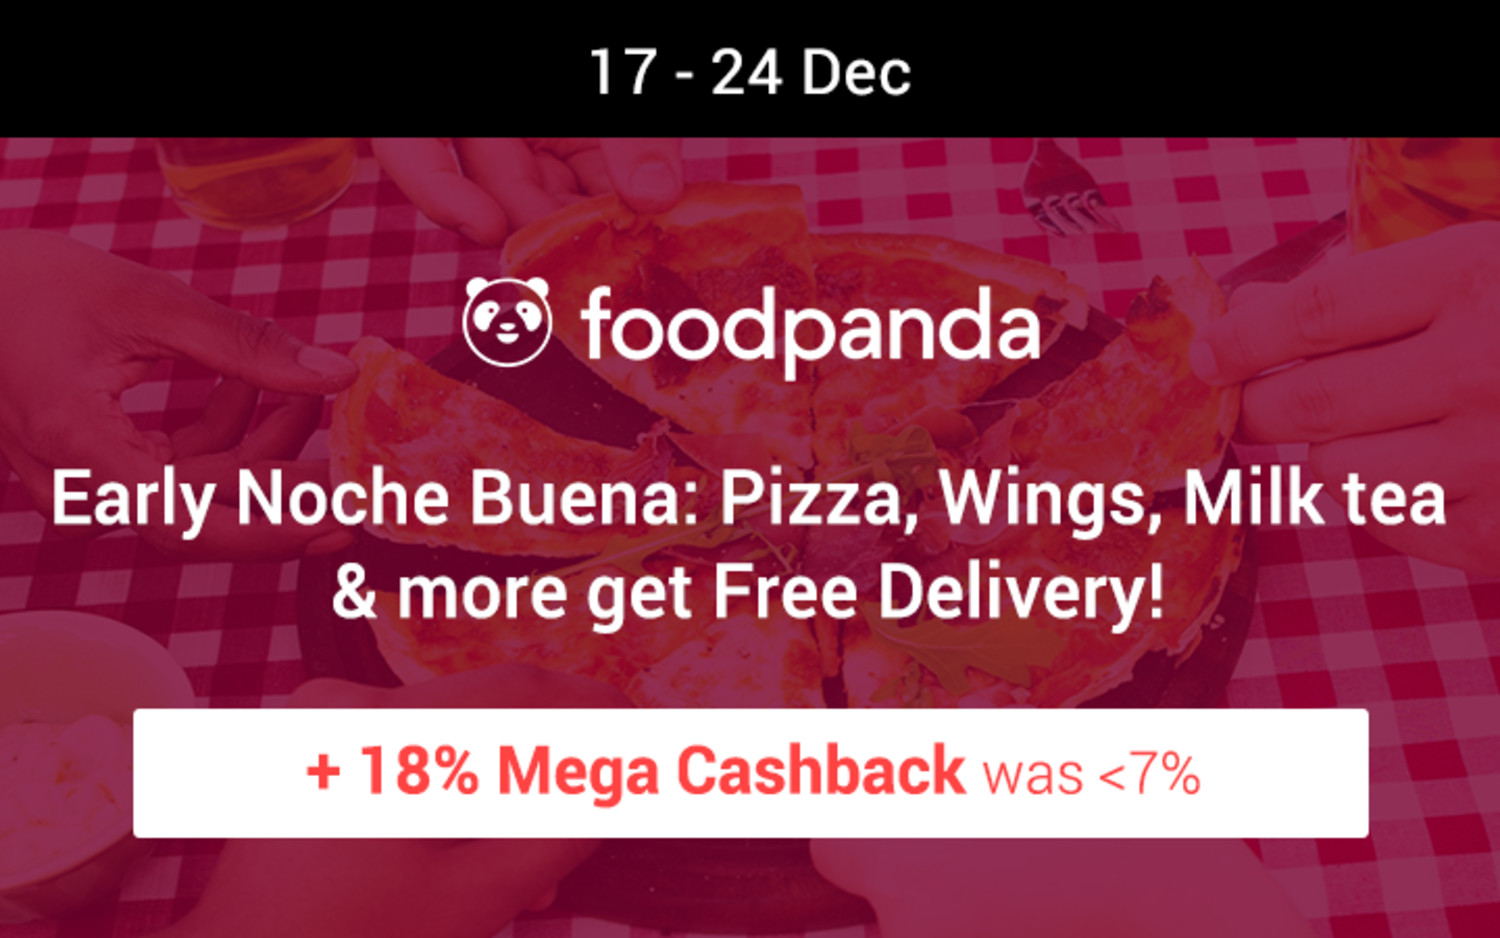 foodpanda Early Noche Buena: Pizza, Wings, Milk tea & more get Free Delivery! + 18% Mega Cashback (was 7%)